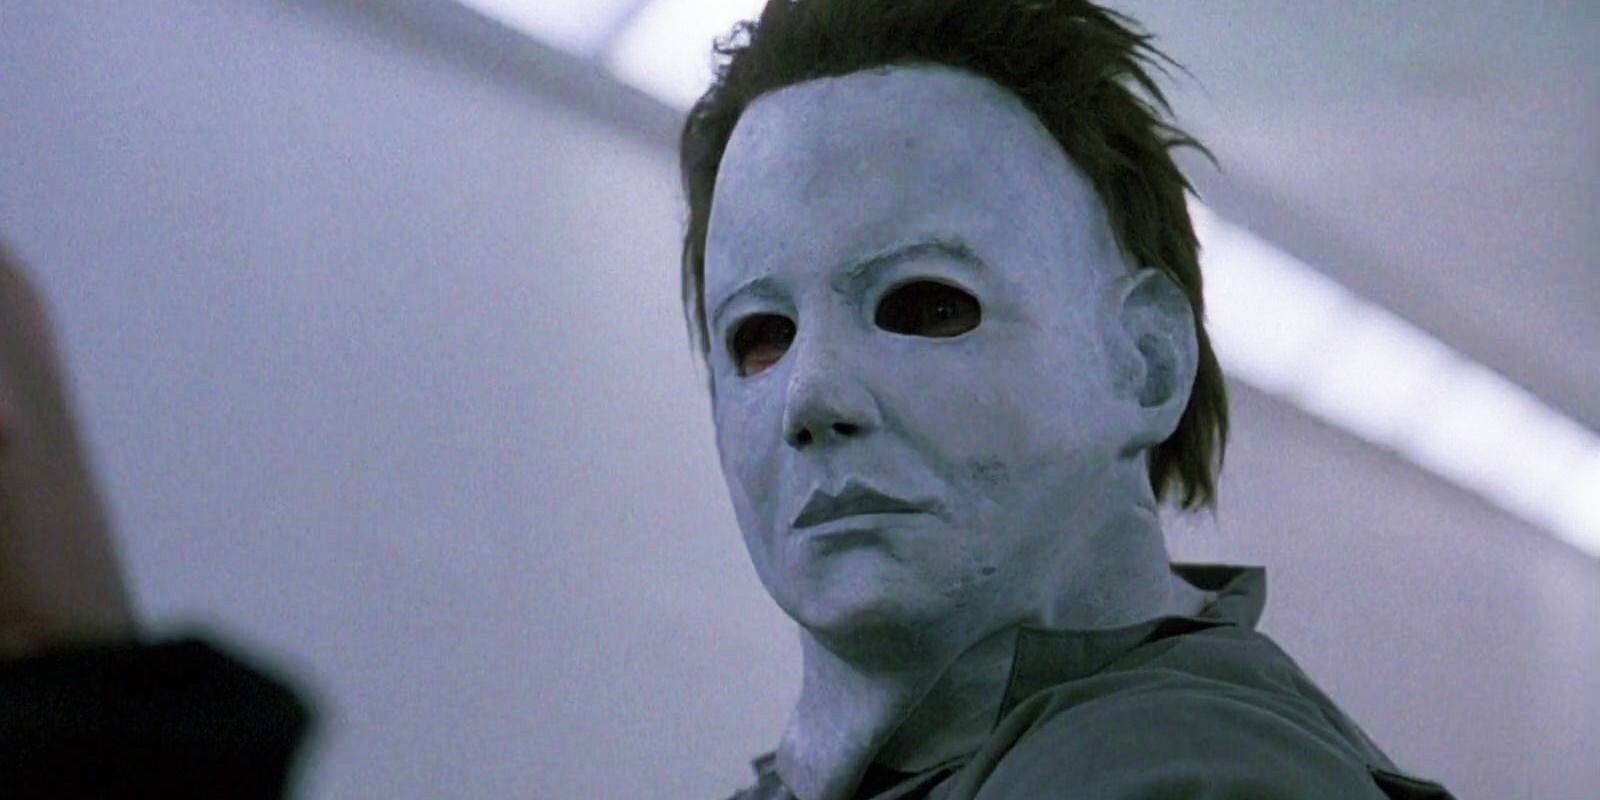 Halloween 2020 Michael Myers And Lore Halloween: How Long Michael Myers Really Had The Thorn Curse